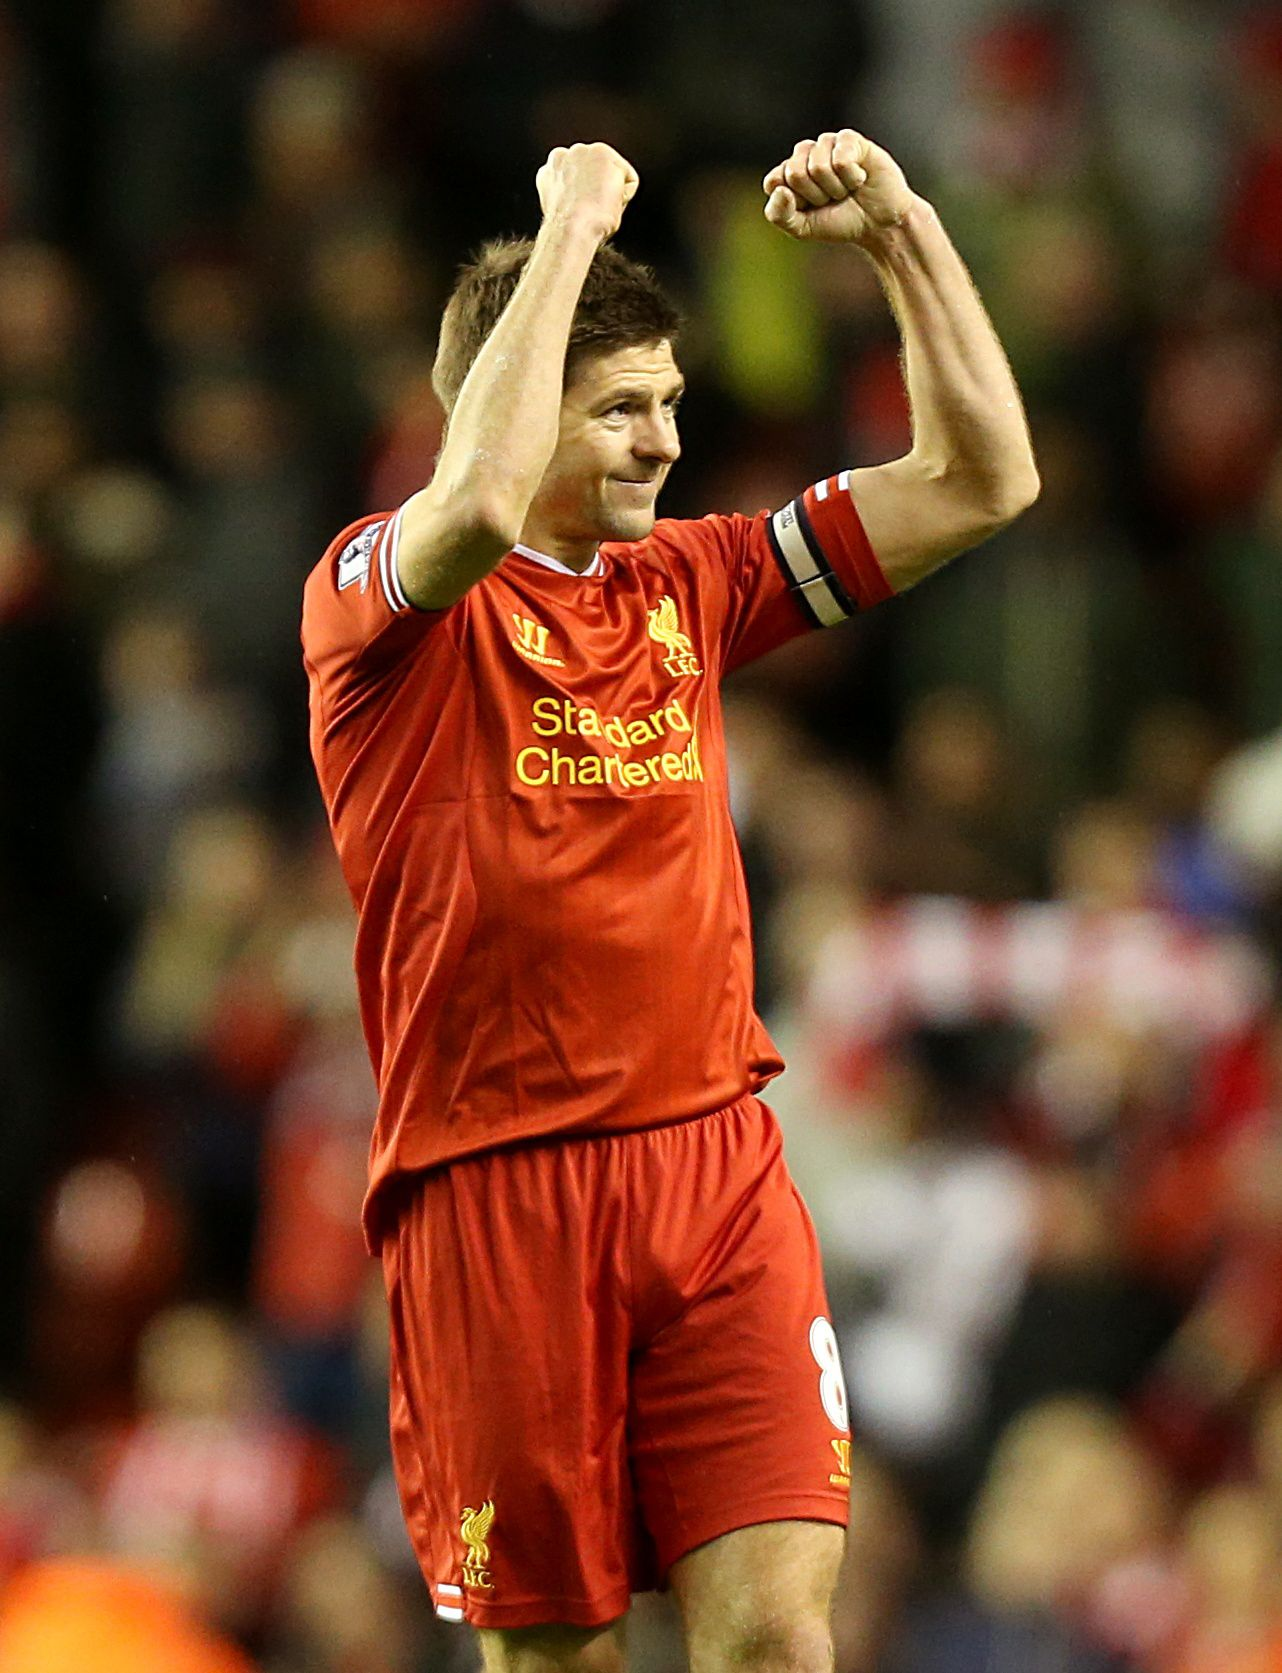 Boyman on Sport - Steven Gerrard deserves a Premier League winner's medal, but Liverpool supporters will be unbearable if they win the title